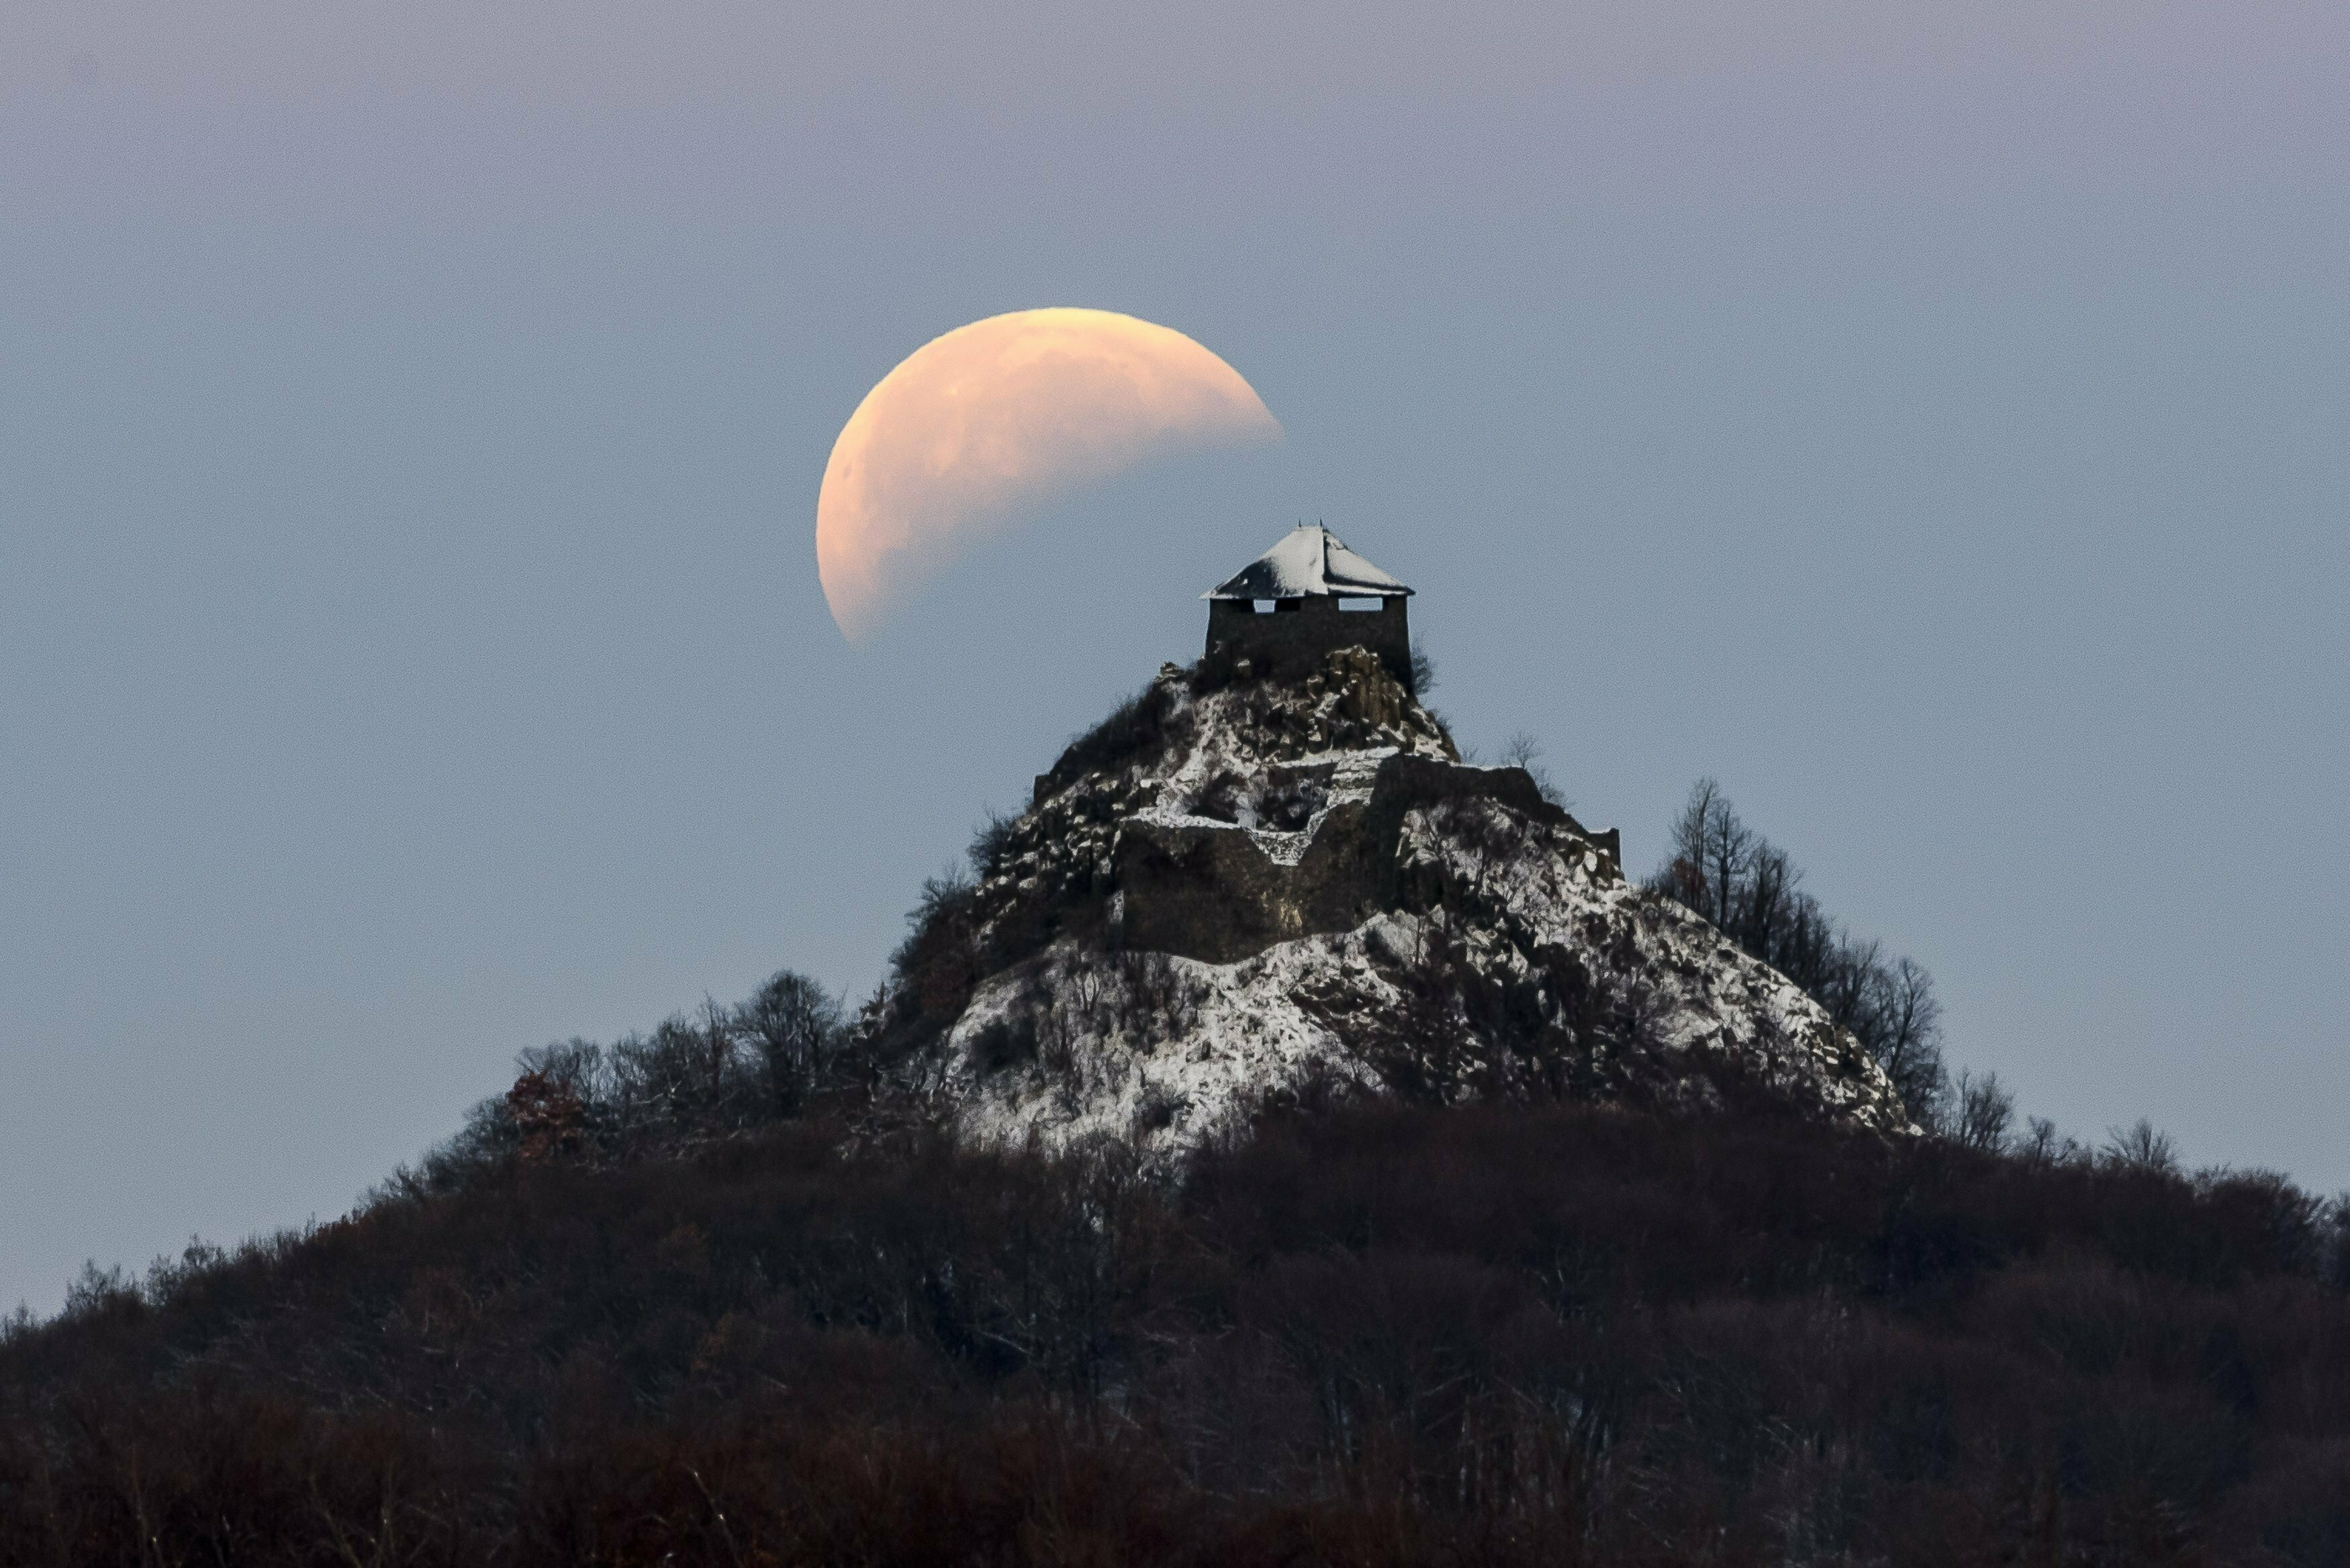 <div class='meta'><div class='origin-logo' data-origin='none'></div><span class='caption-text' data-credit='Peter Komka/MTI via AP'>The moon fully shadowed by the Earth is seen above the castle of Salgo during a total lunar eclipse near Salgotarjan, Hungary, early Monday, Jan. 21, 2019.</span></div>